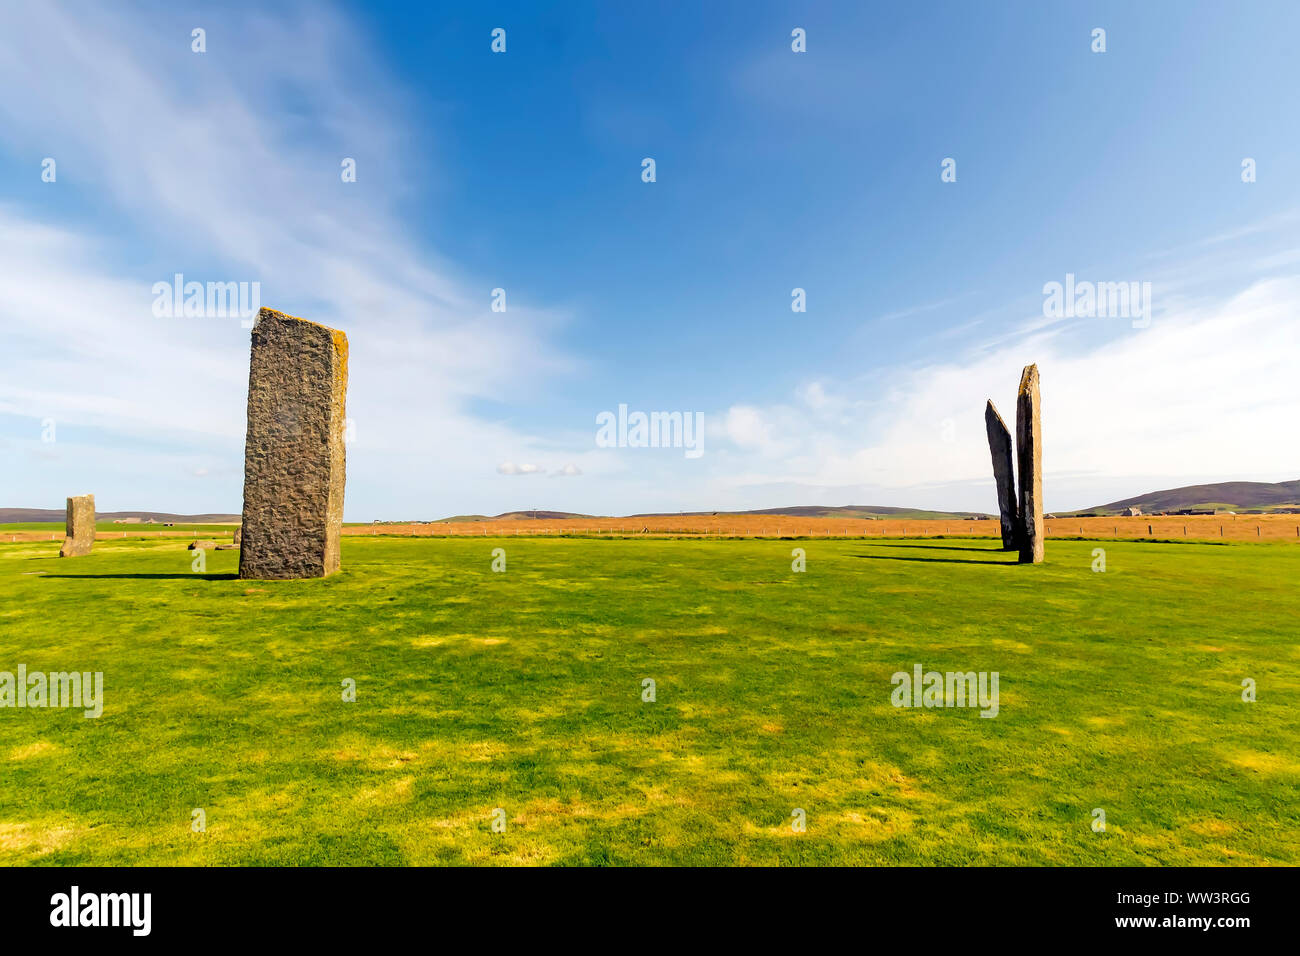 Standing Stones of Stenness dates from at least 3100BC and are part of the Heart of Neolithic Orkney UNESCO World Heritage Site, Scotland Stock Photo